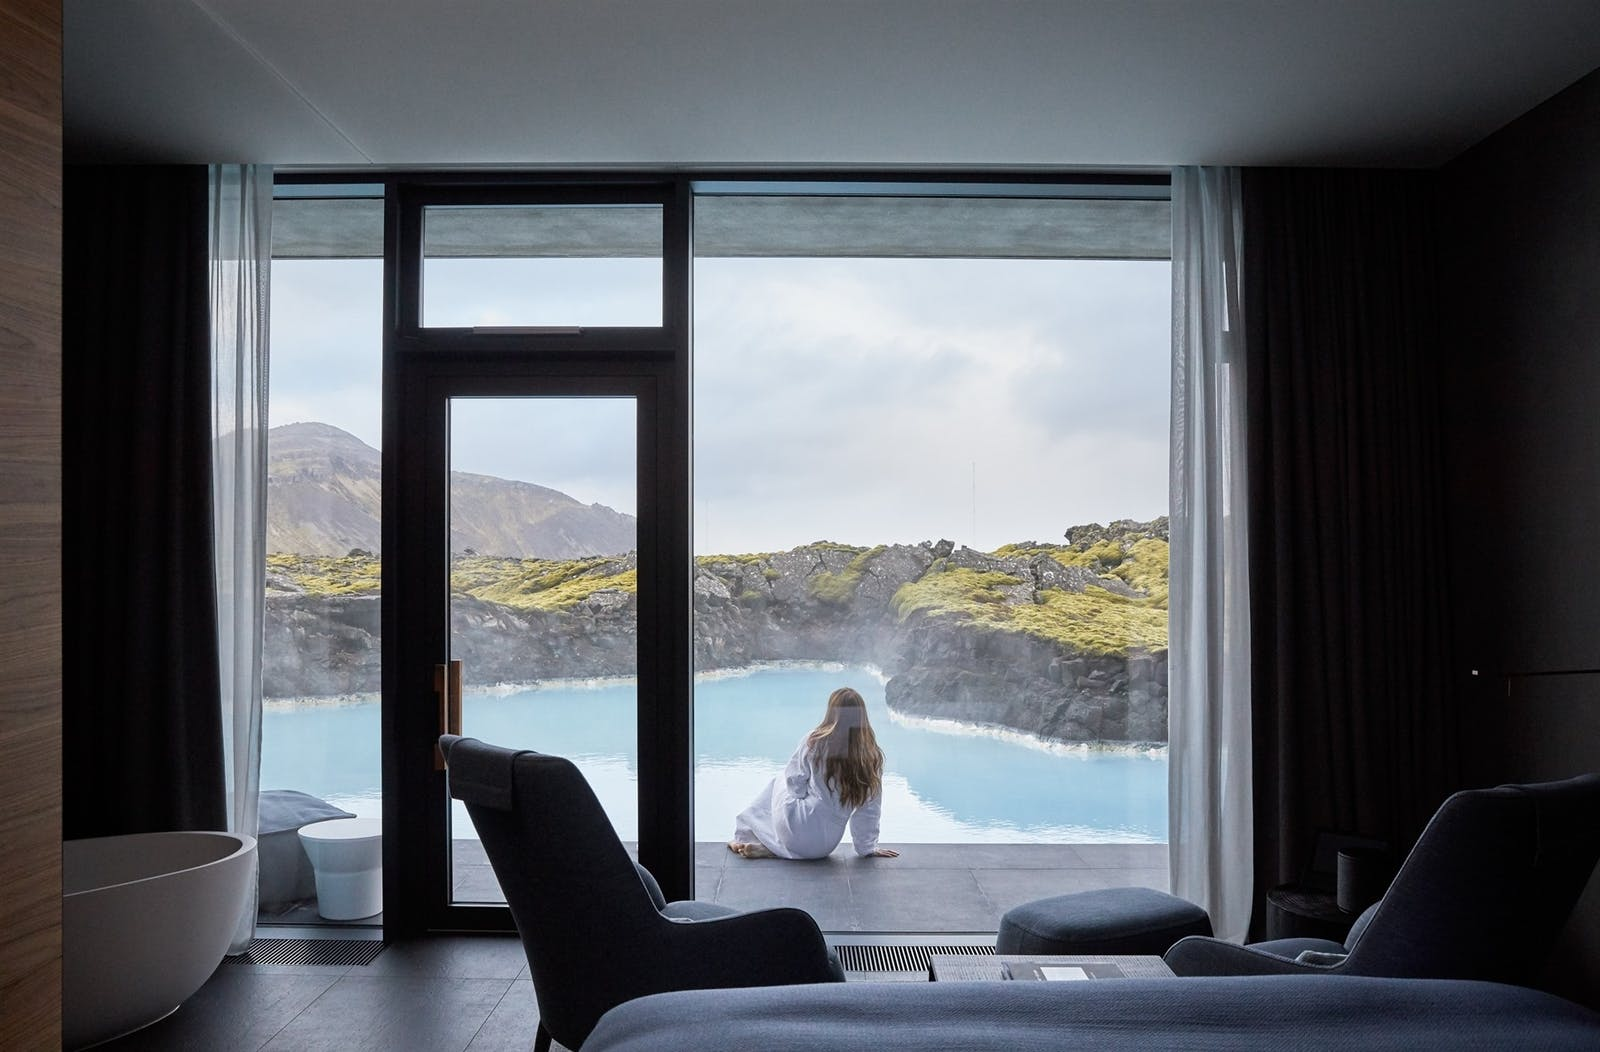 Lagoon View Junuir Suite, Retreat Hotel, Iceland